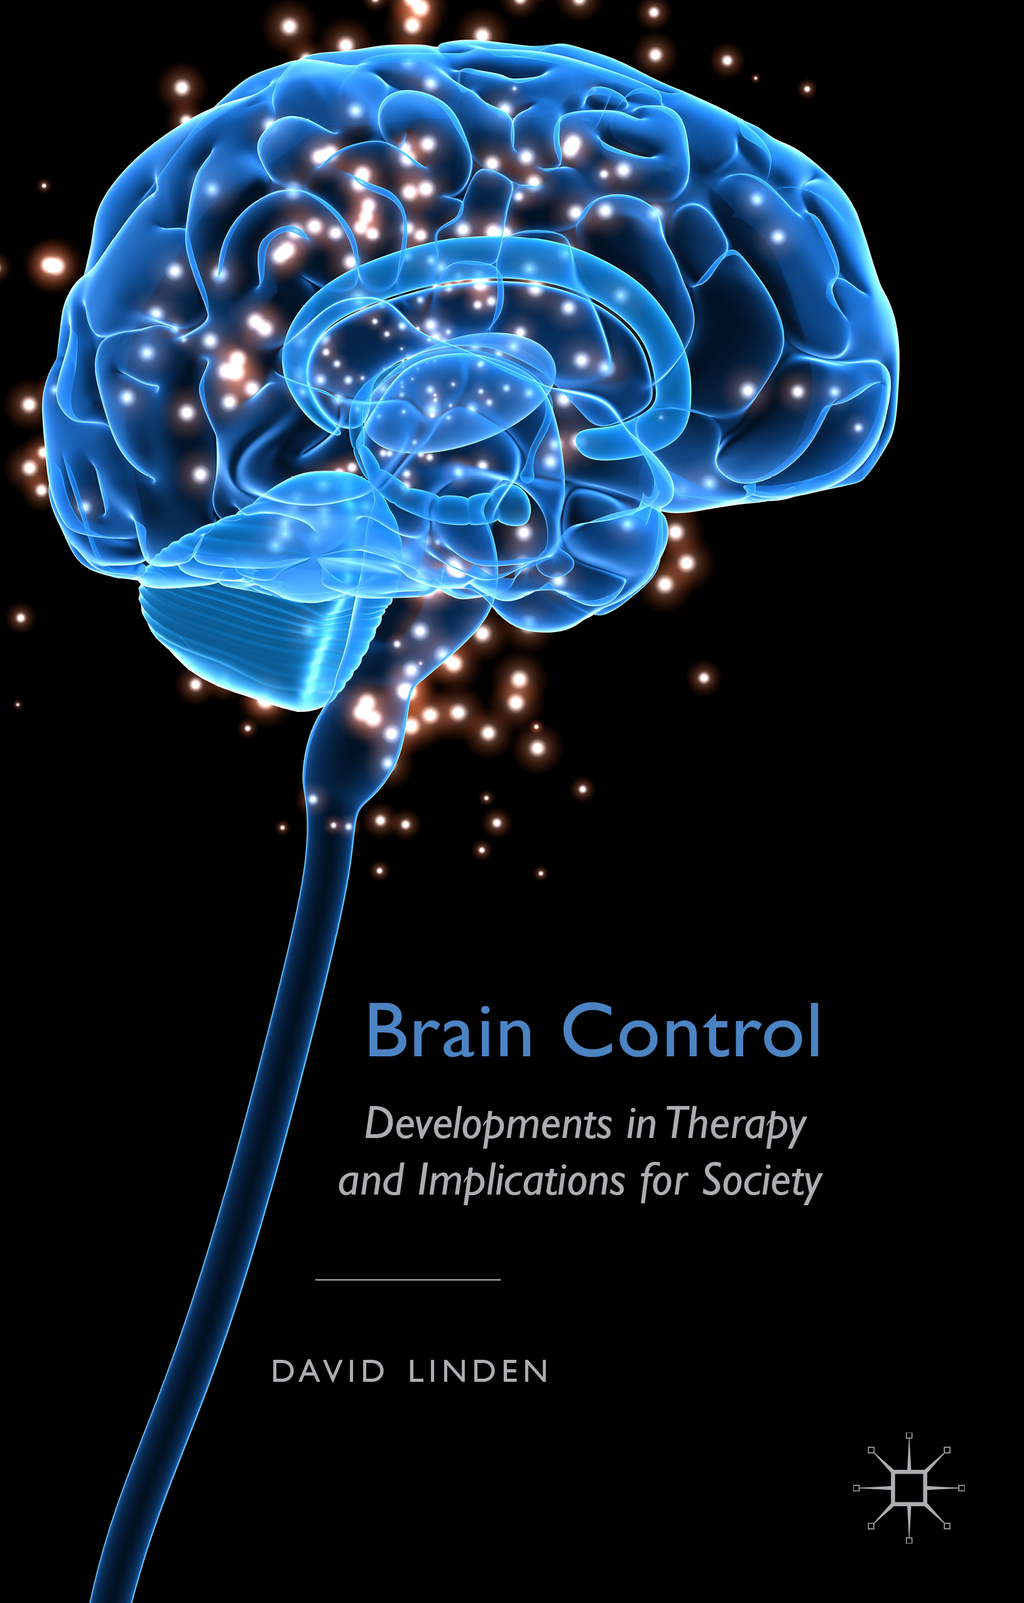 Brain Control Developments in Therapy and Implications for Society